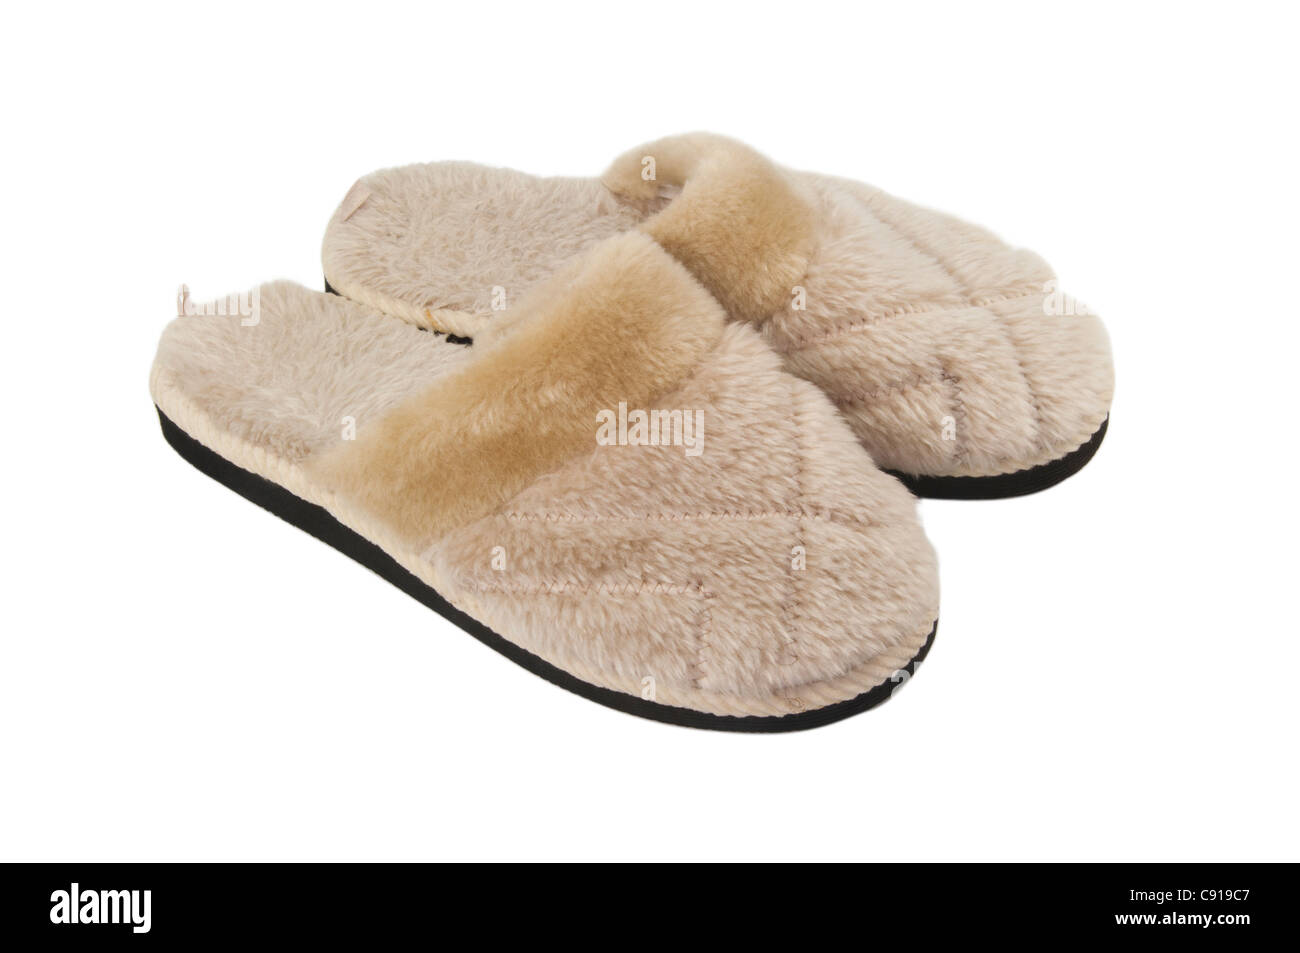 Terry cloth slippers - Stock Image